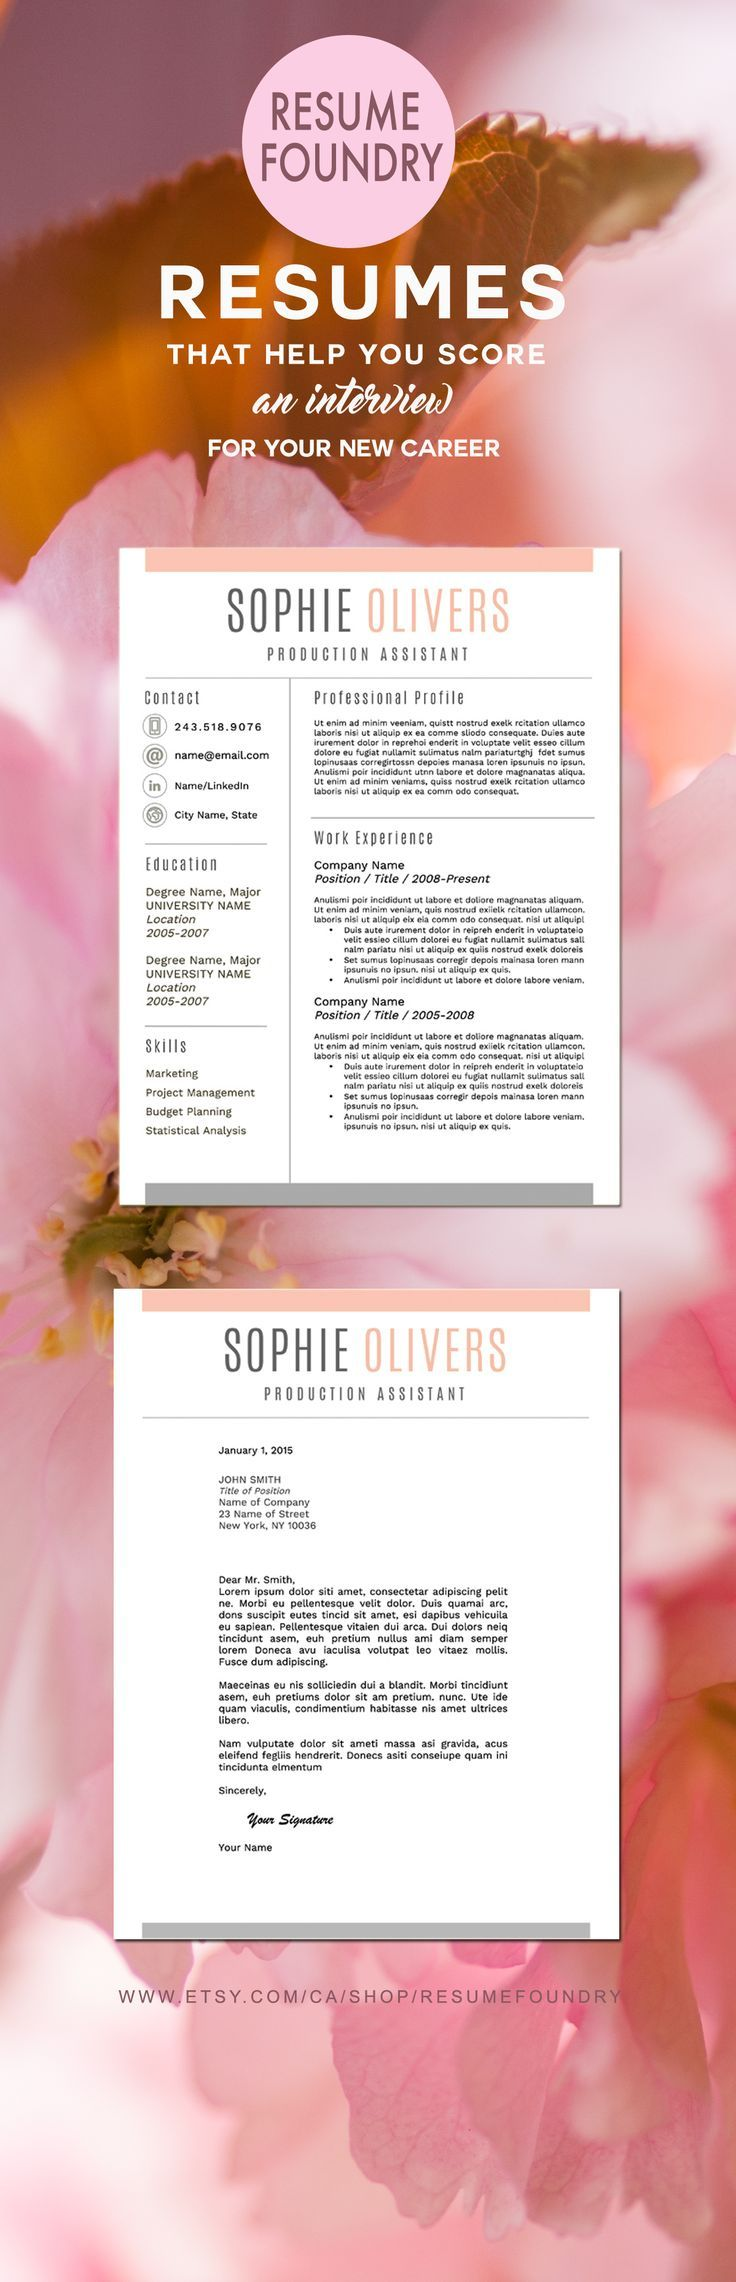 best ideas about resume templates resume resume elegant resume template instant for use microsoft word resume foundry